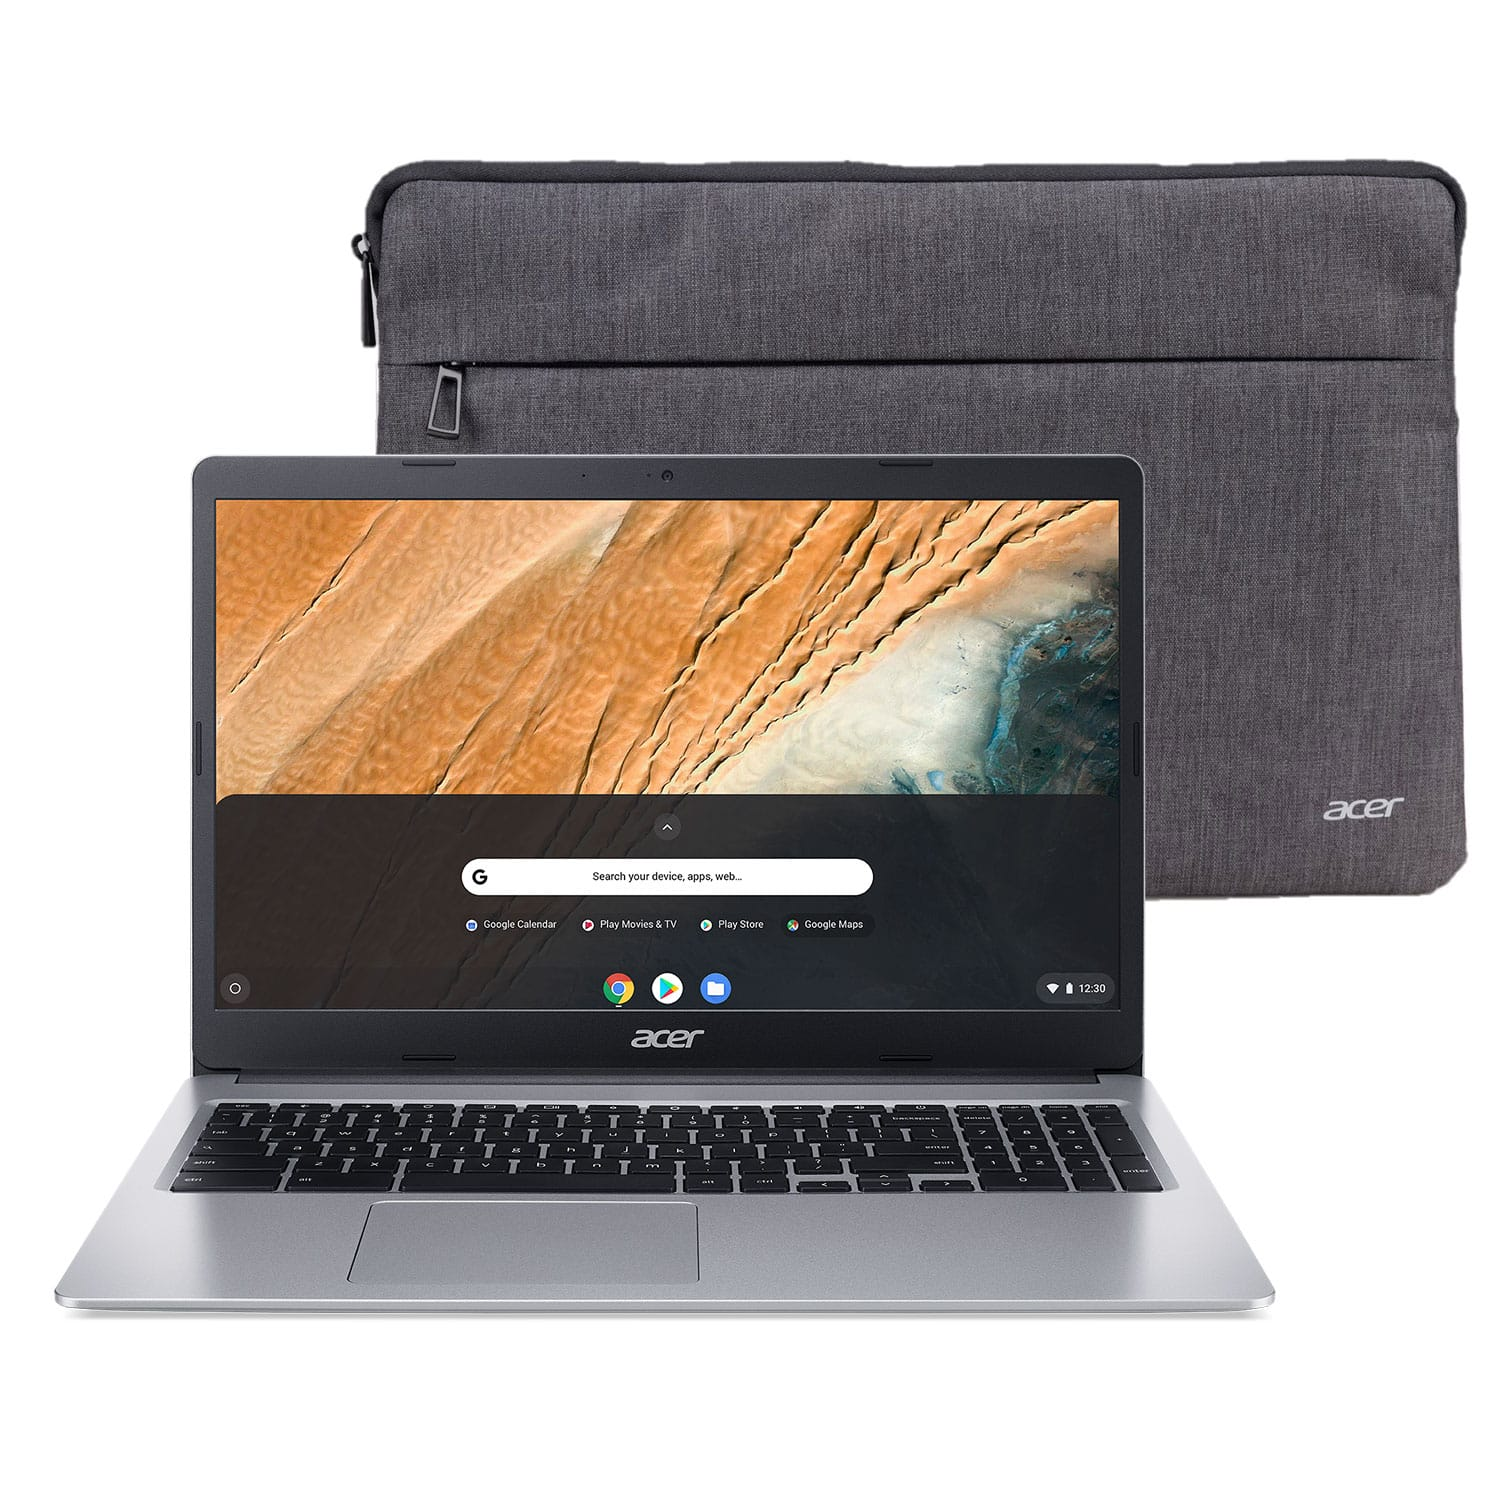 "BIS @ WM $179 Acer 315 15.6"" Celeron 4GB/32GB Chromebook, 15.6"" HD Display, Intel Celeron N4000, 4GB LPDDR4, 32GB eMMC, Protective Sleeve, Chrome OS - CB315-3H-C2C3"